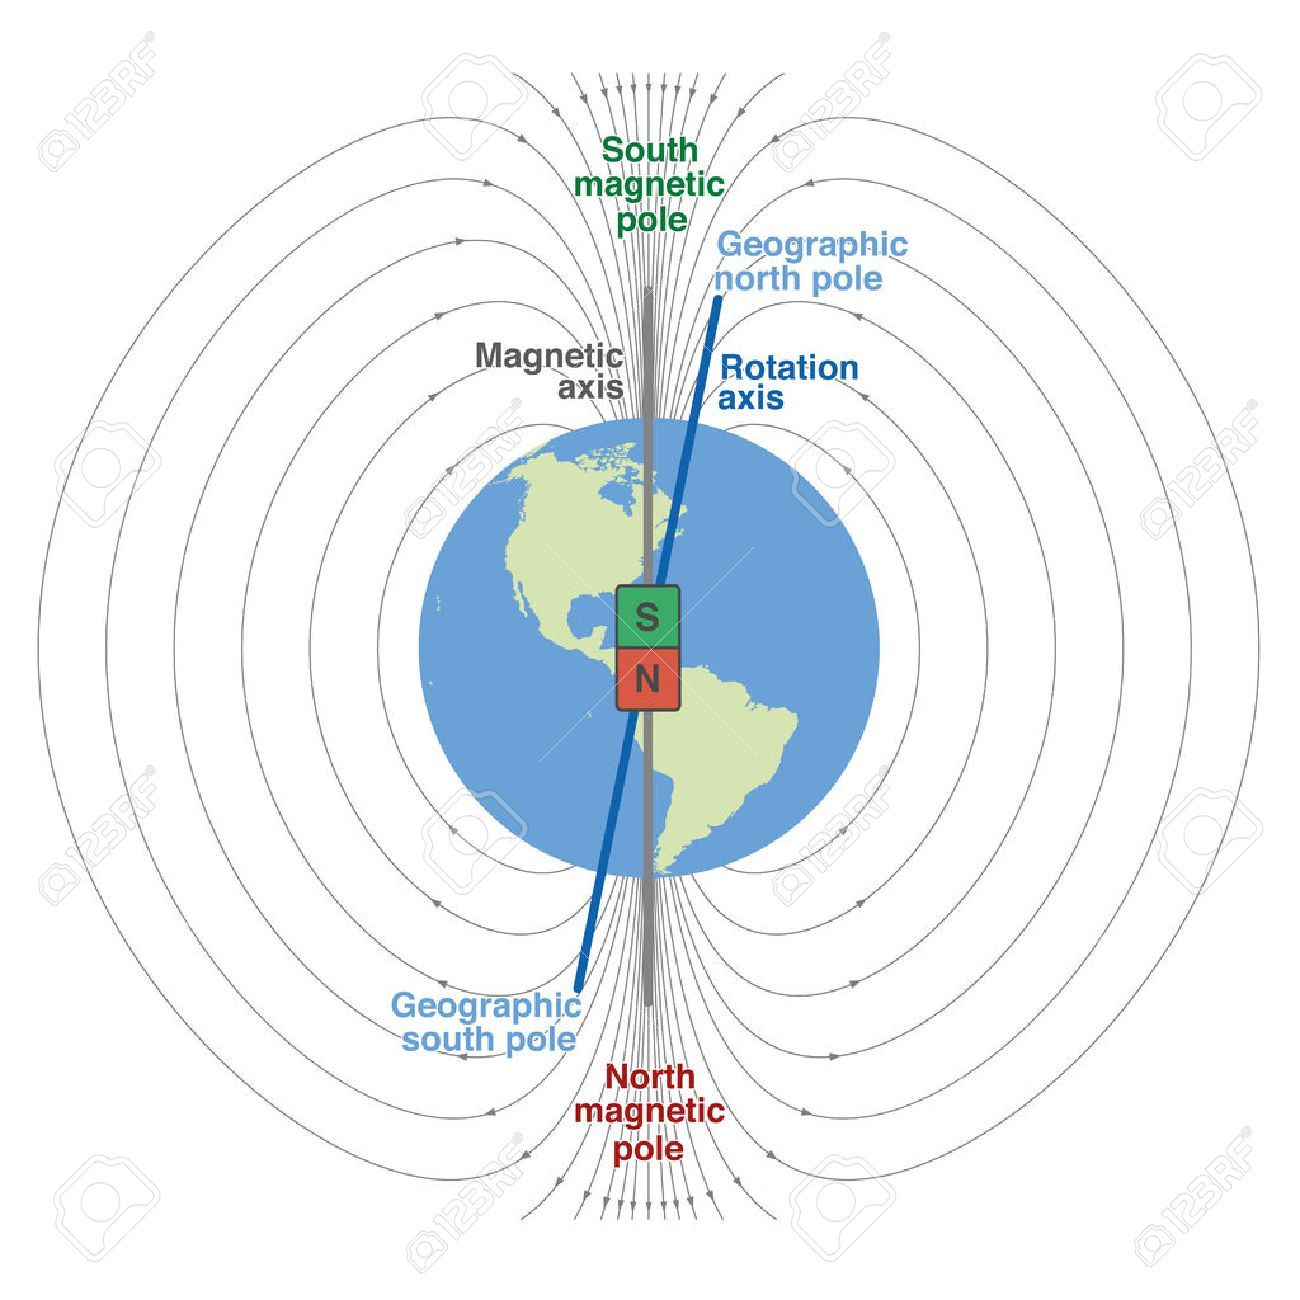 Geomagnetic Field Of Planet Earth Scientific Depiction With Geographic And Magnetic North And South Pole Magnet Magnetic Pole Earth S Magnetic Field Physics